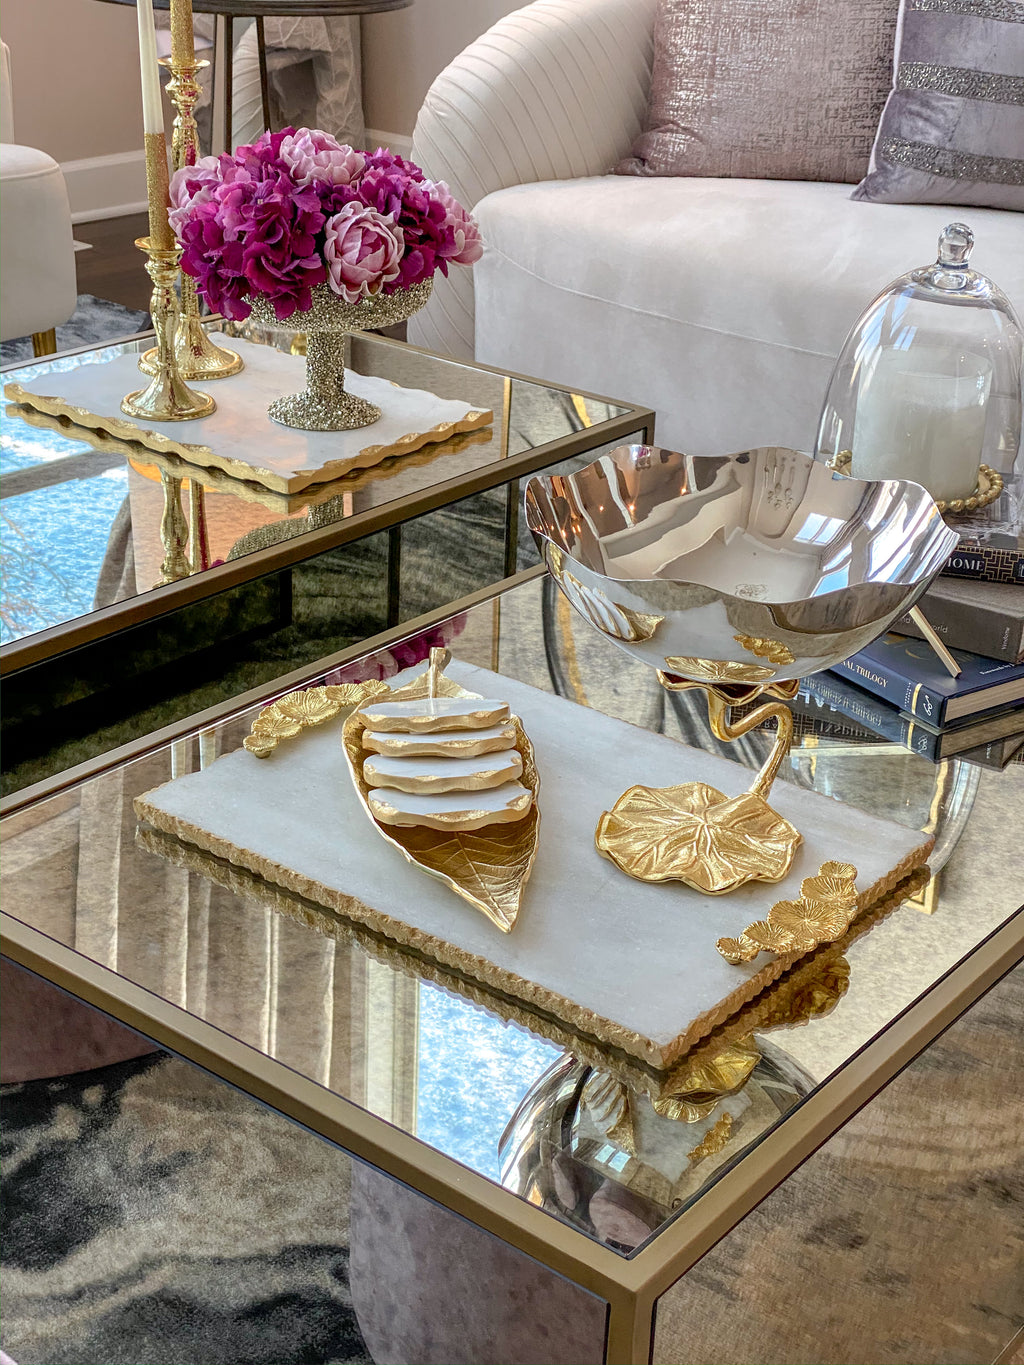 Marble Tray with Gold Floral Handles-Inspire Me! Home Decor